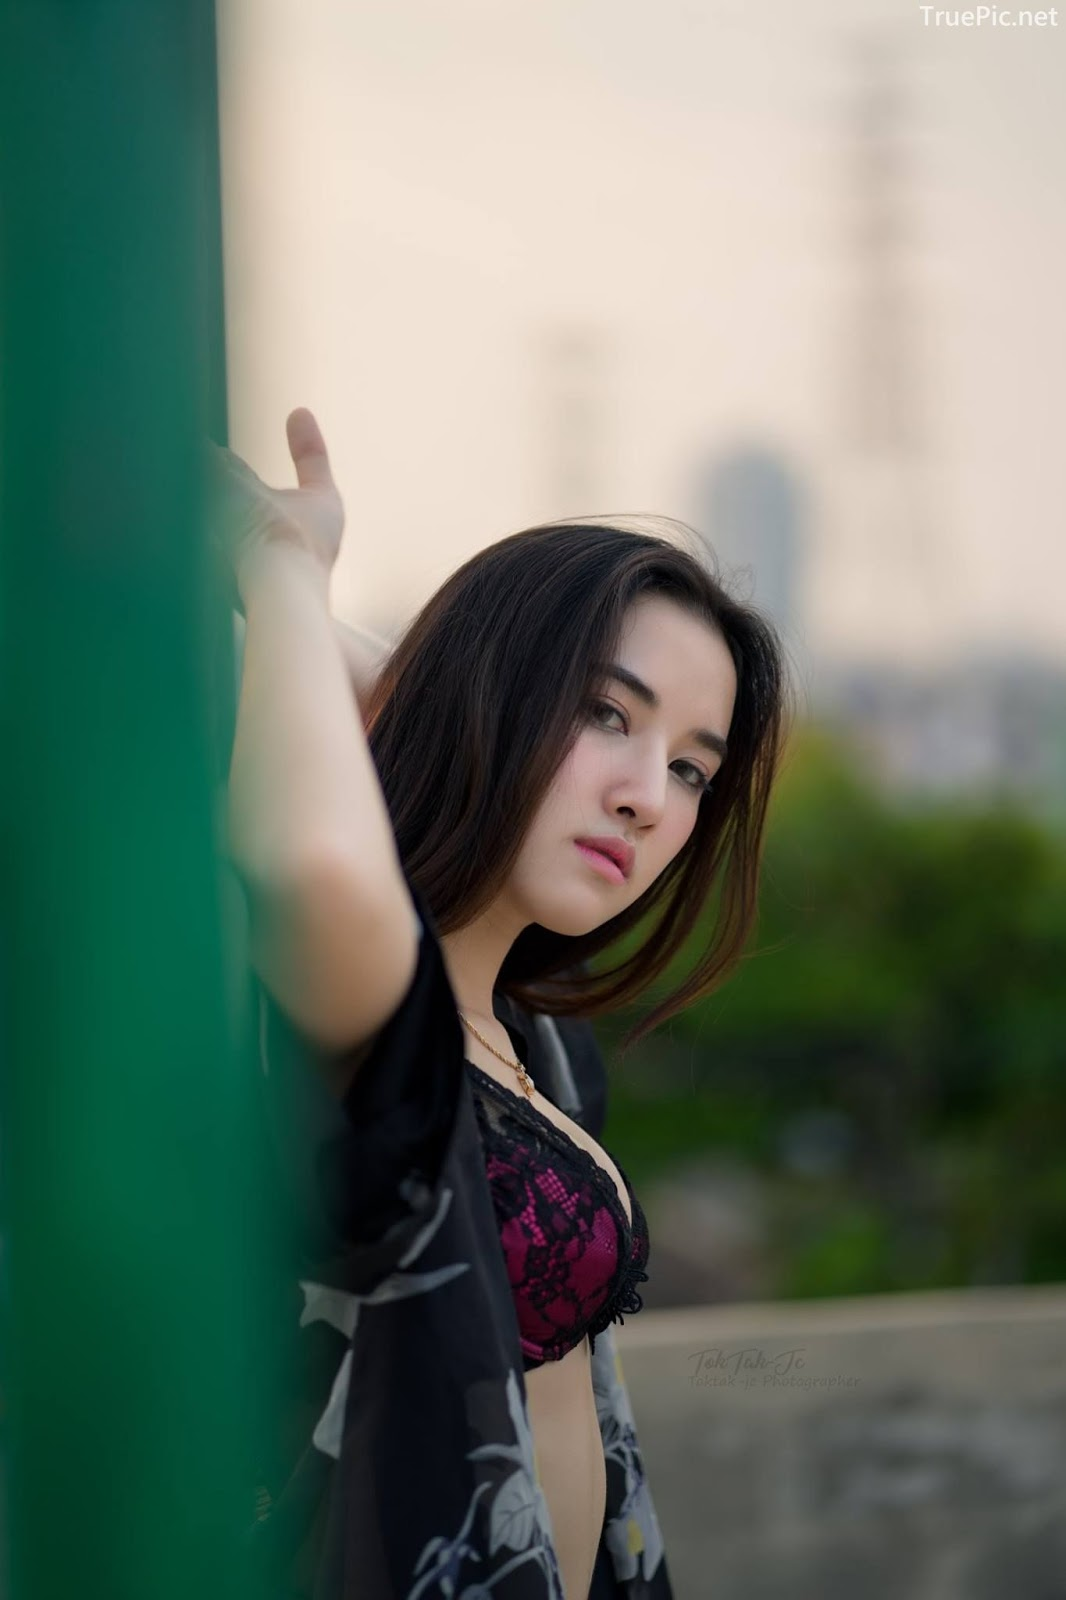 Thailand sexy angel Ploywarin Tippakorn - Black-pink bra and jean on sunset - Picture 8